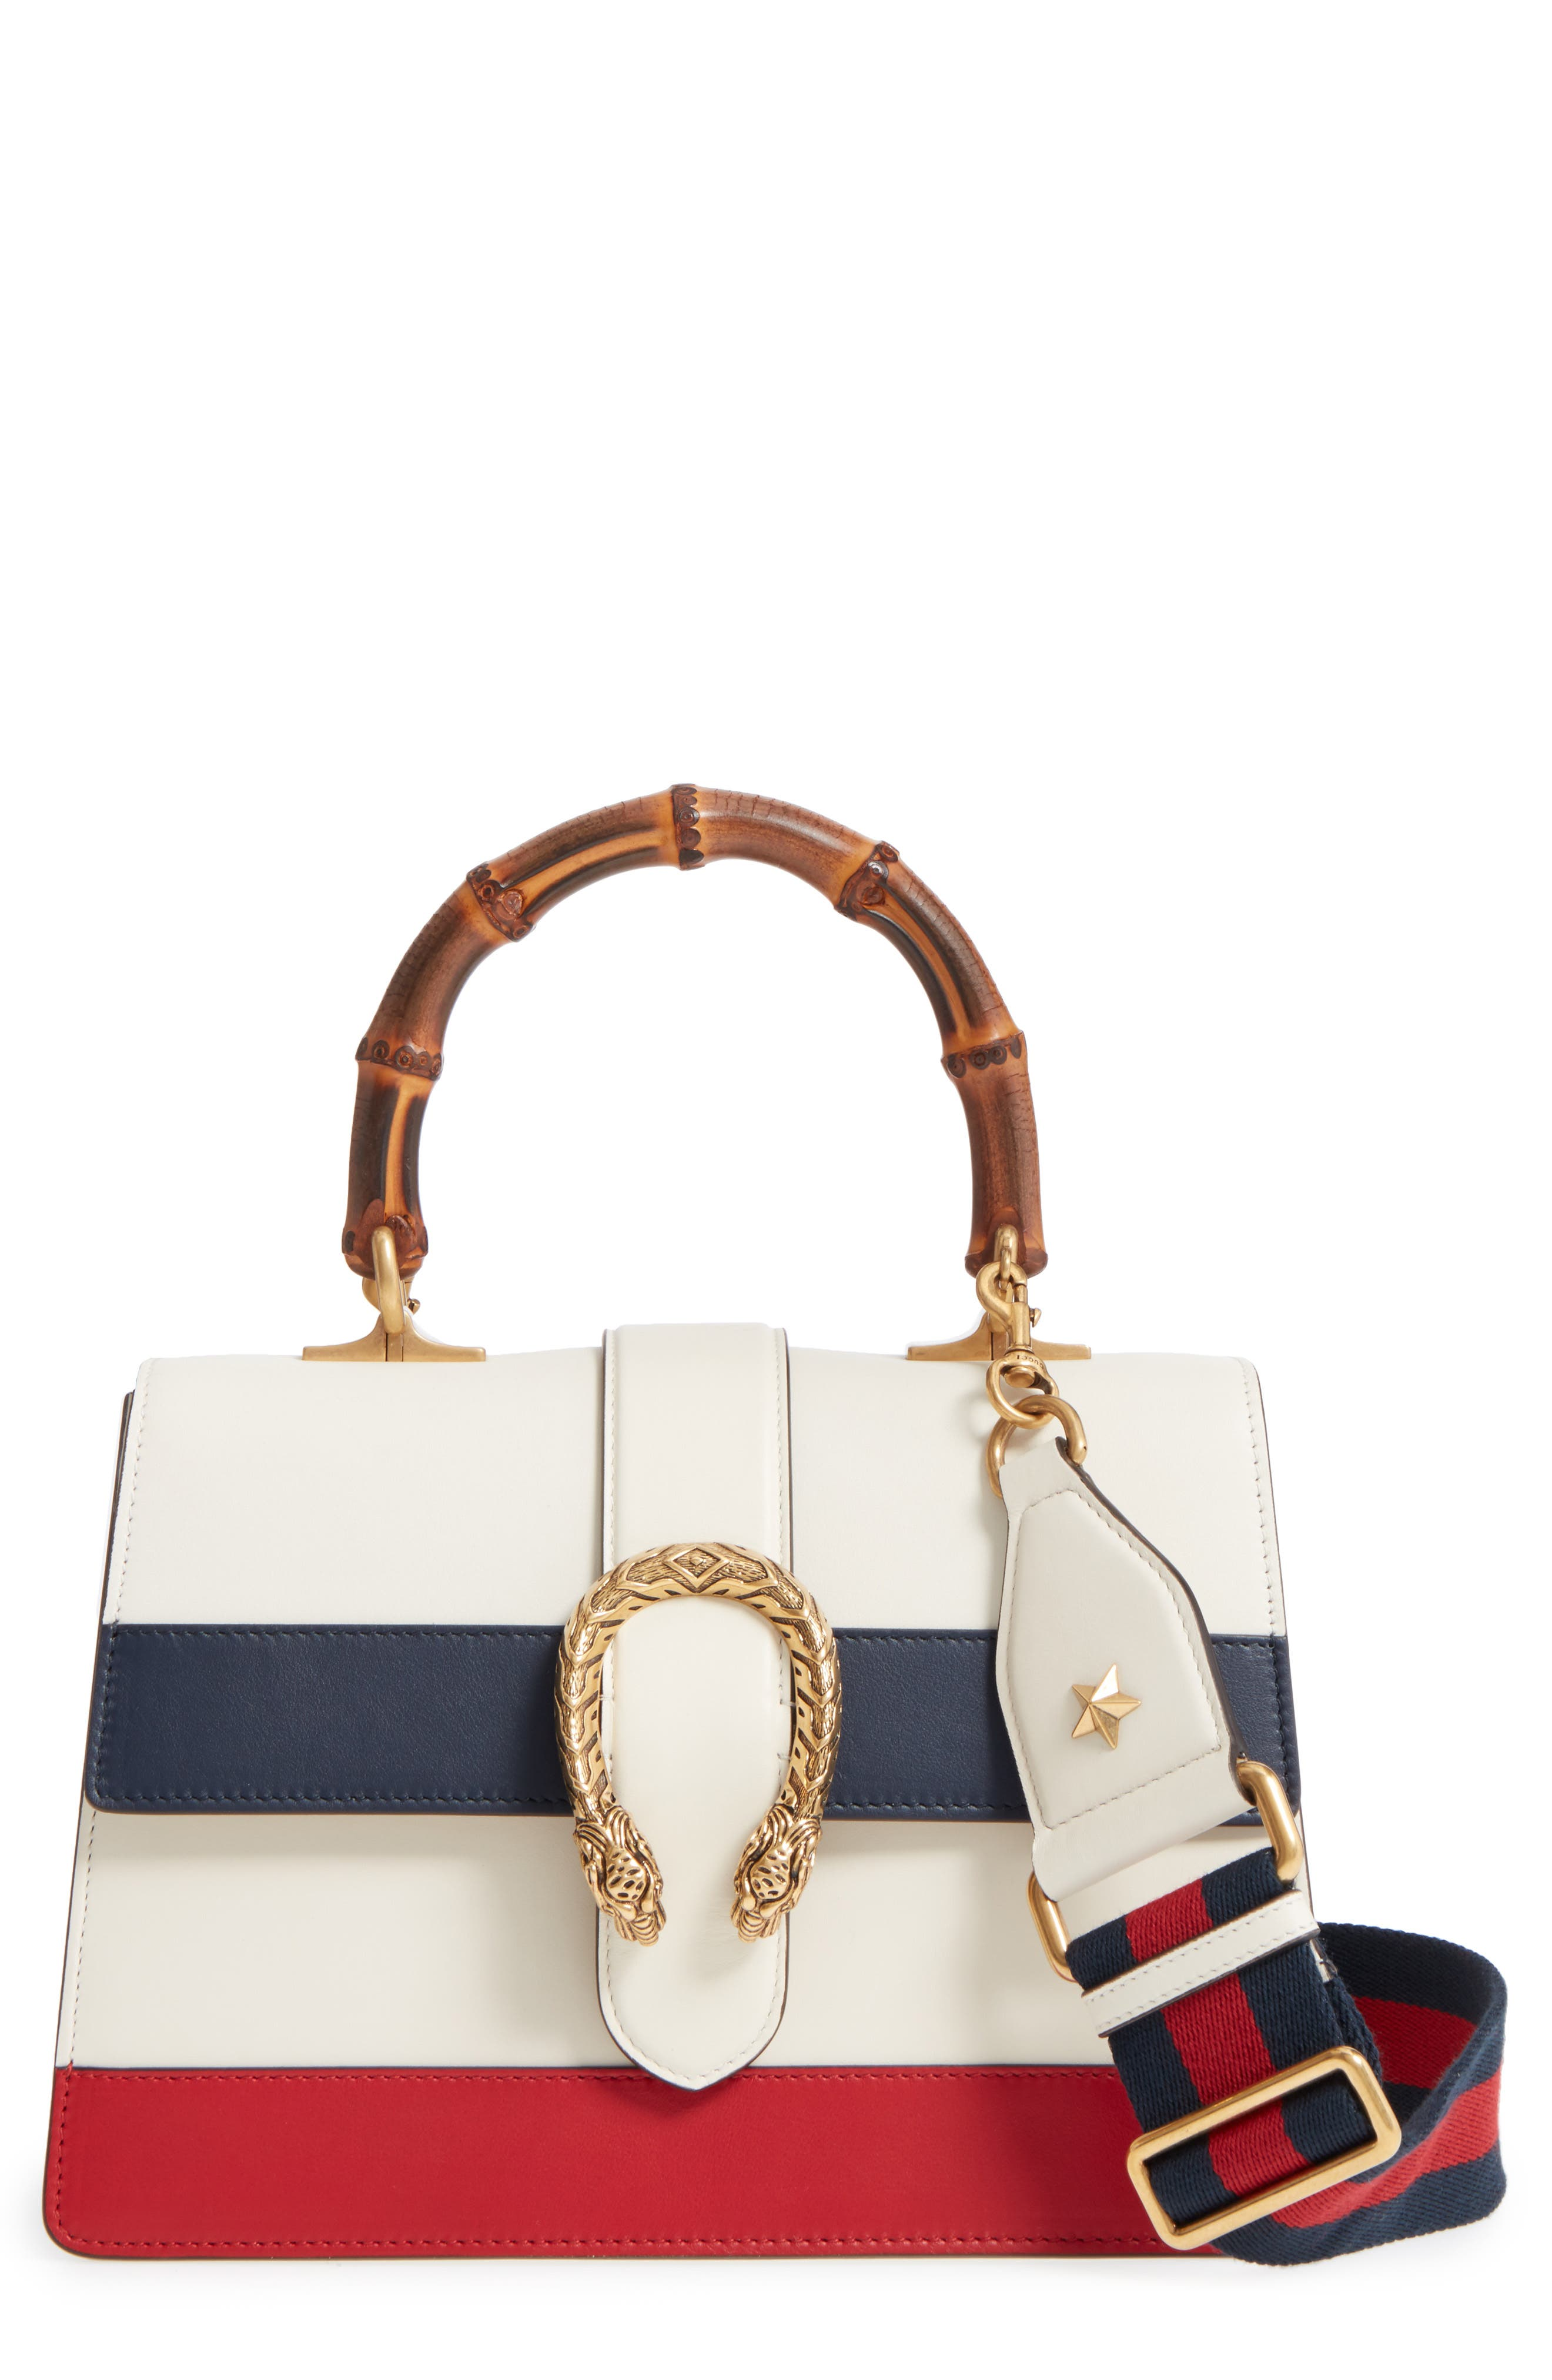 Alternate Image 1 Selected - Gucci Small Dionysus Top Handle Leather Shoulder Bag